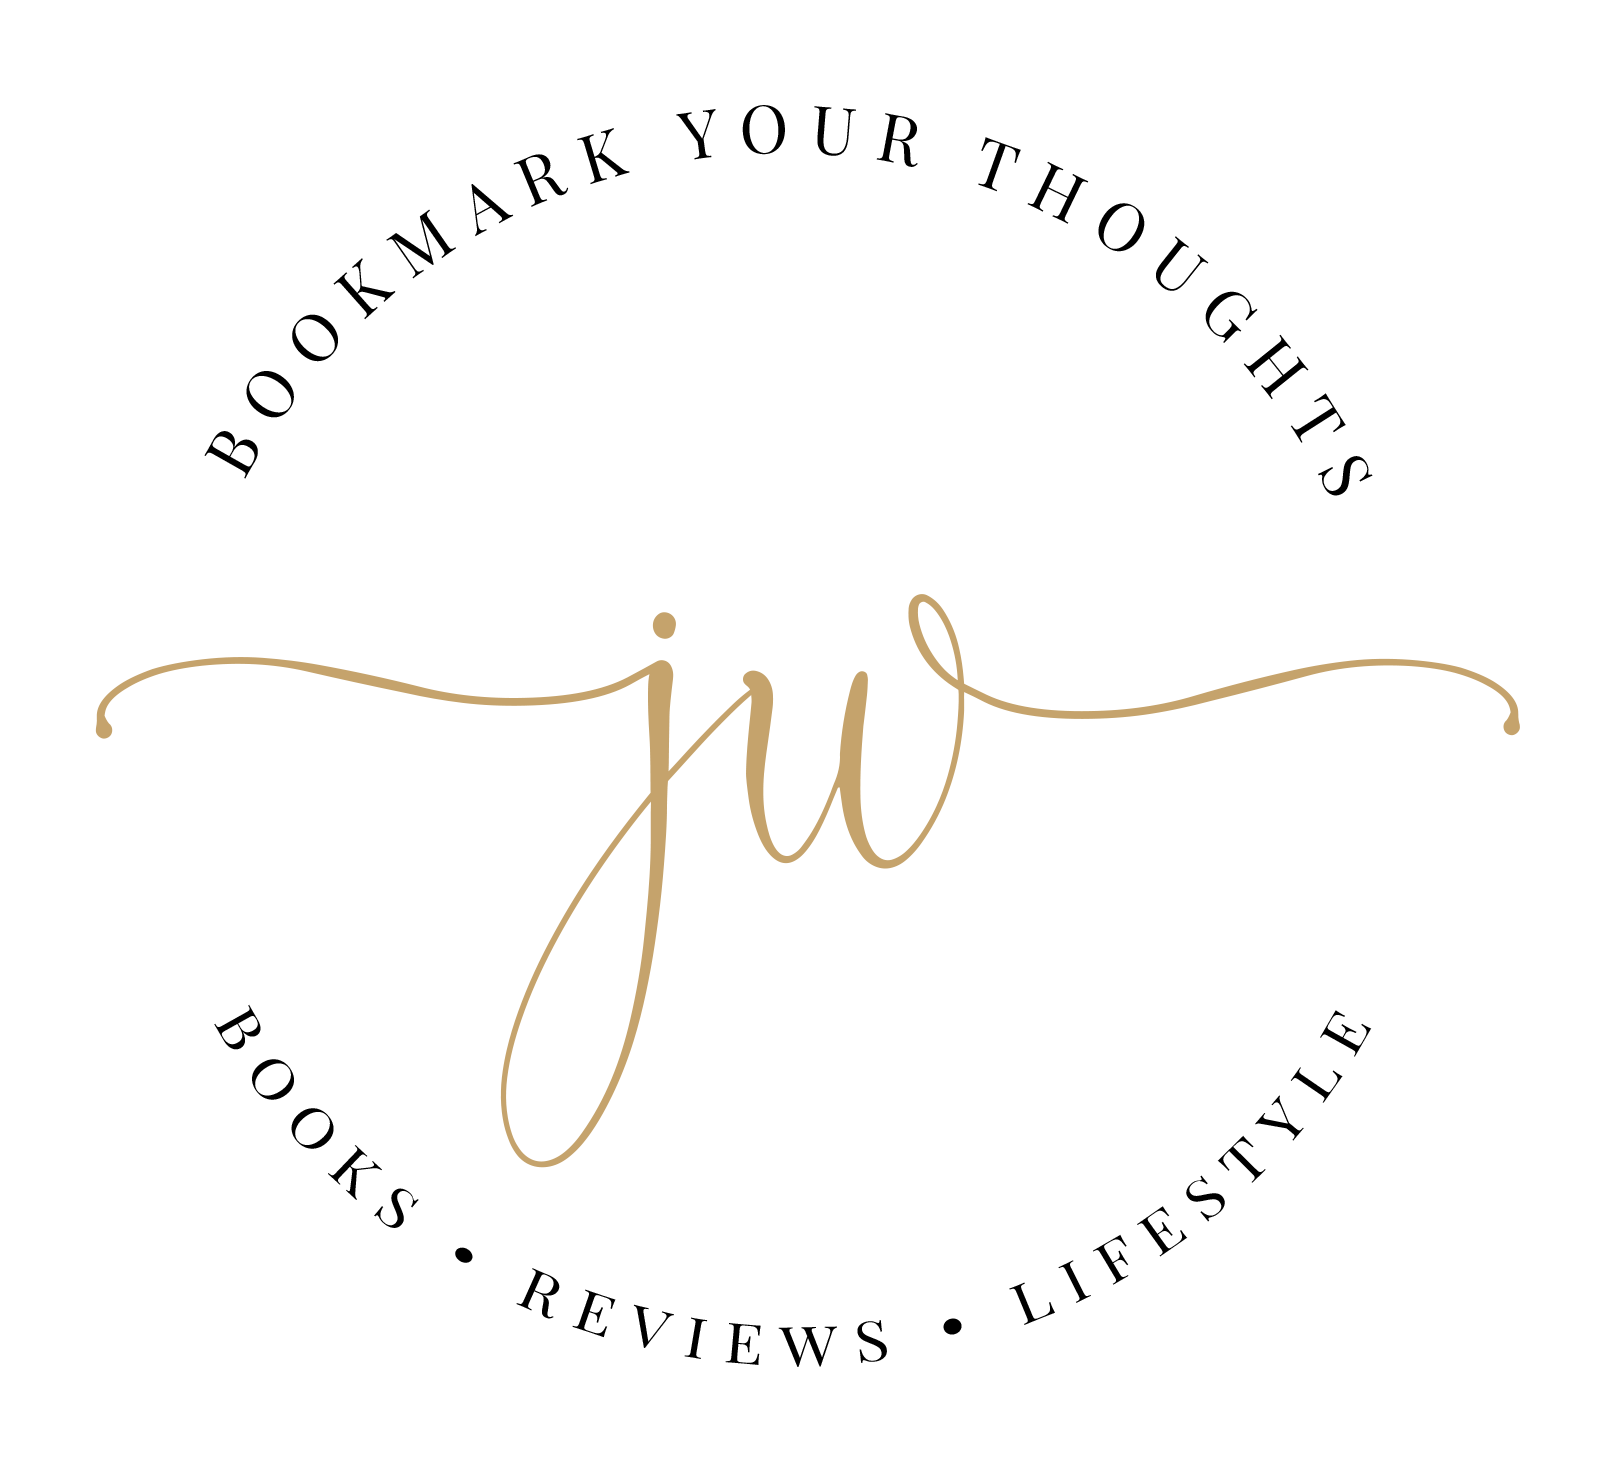 Signature. Bookmark Your Thoughts. Books, Reviews, Lifestyle. Initials in the middle (JW).